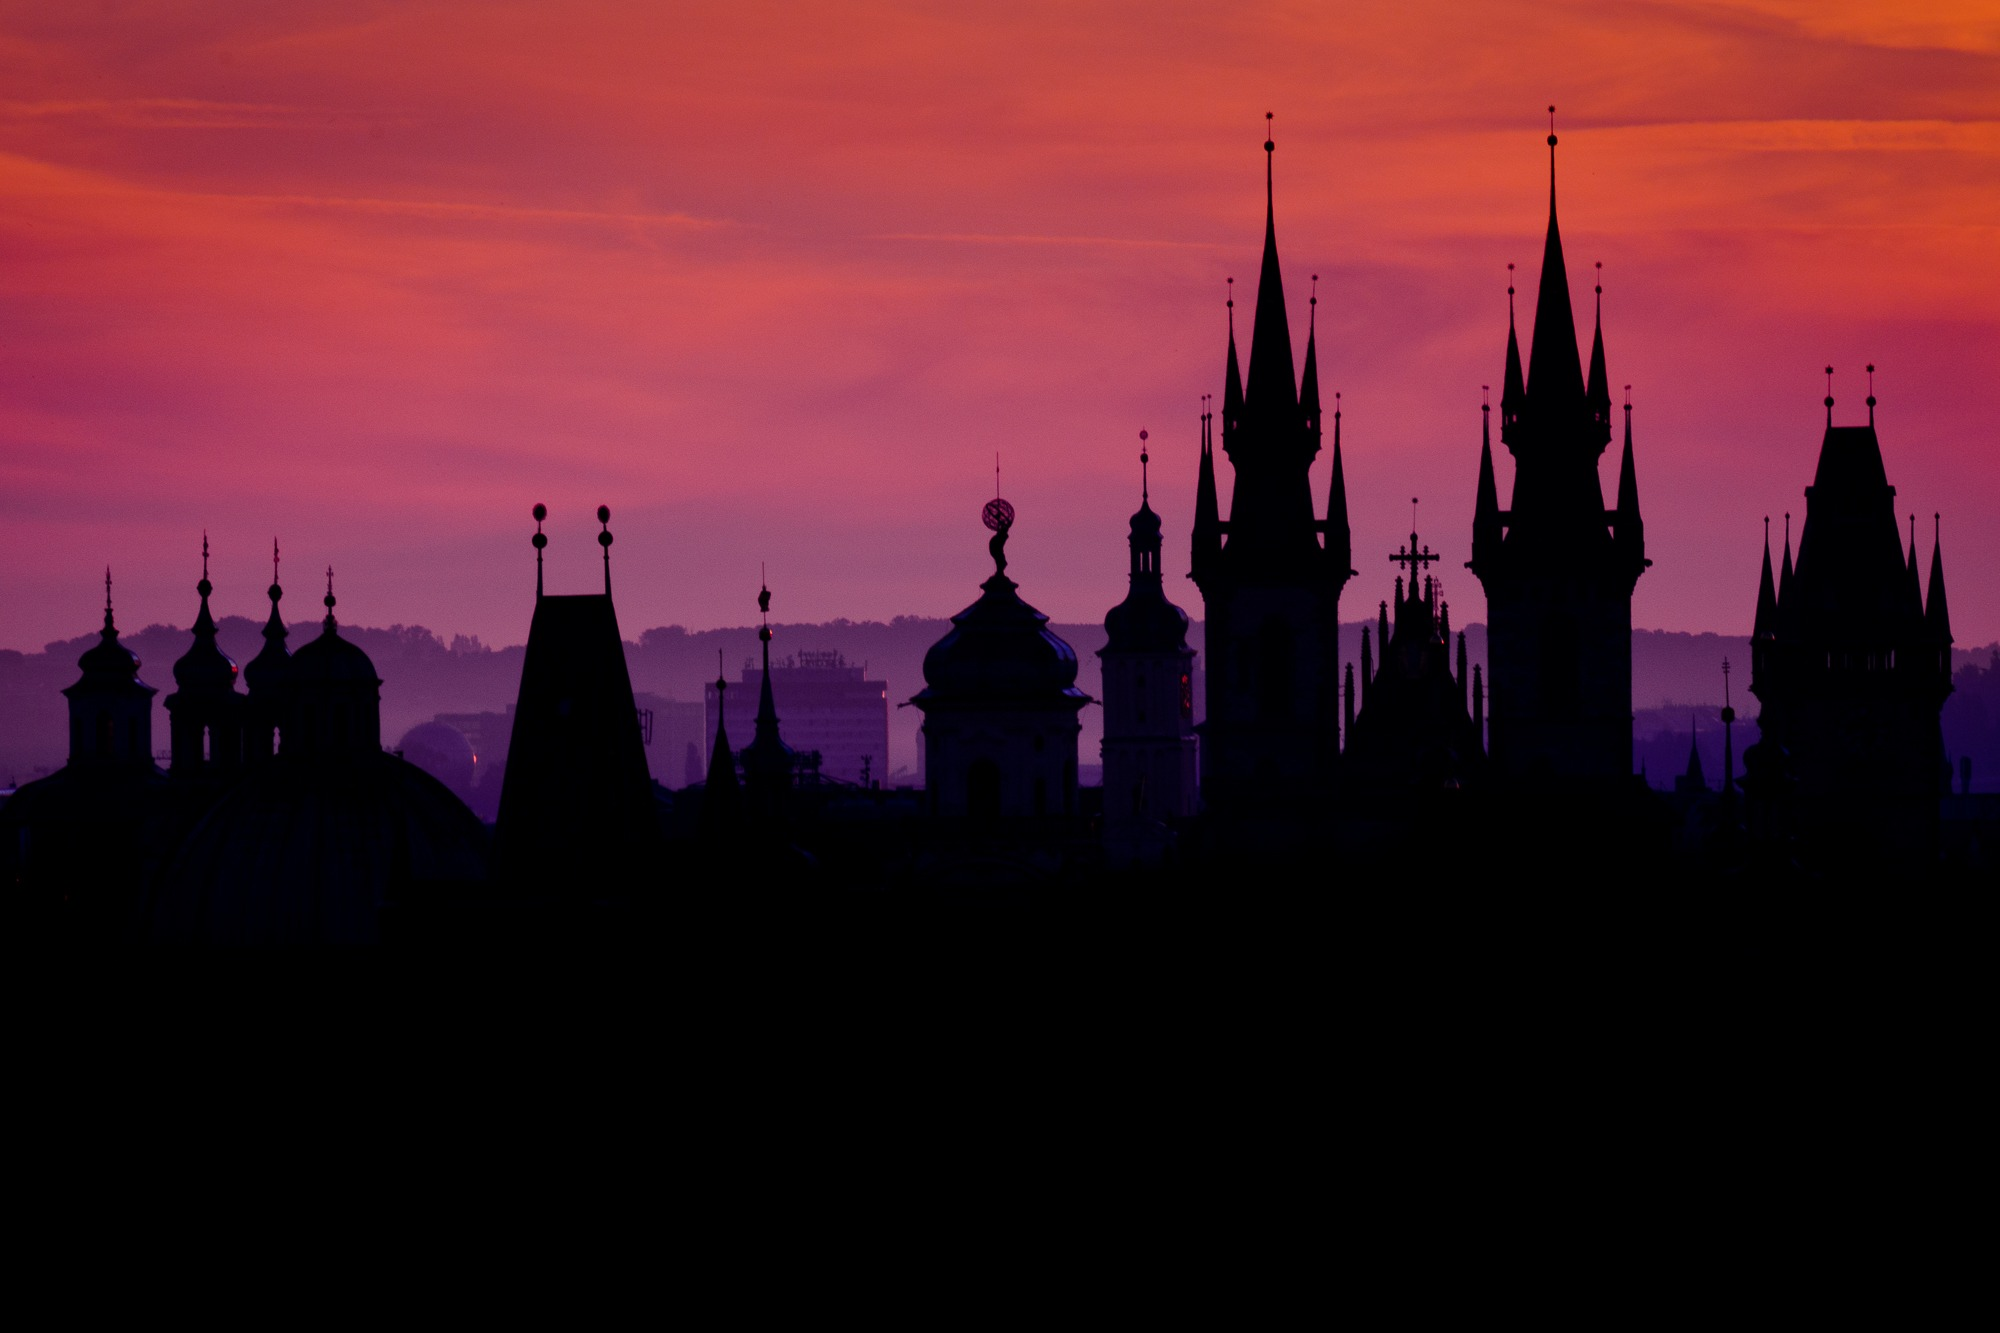 prague towers 100 czech republic silhouttes